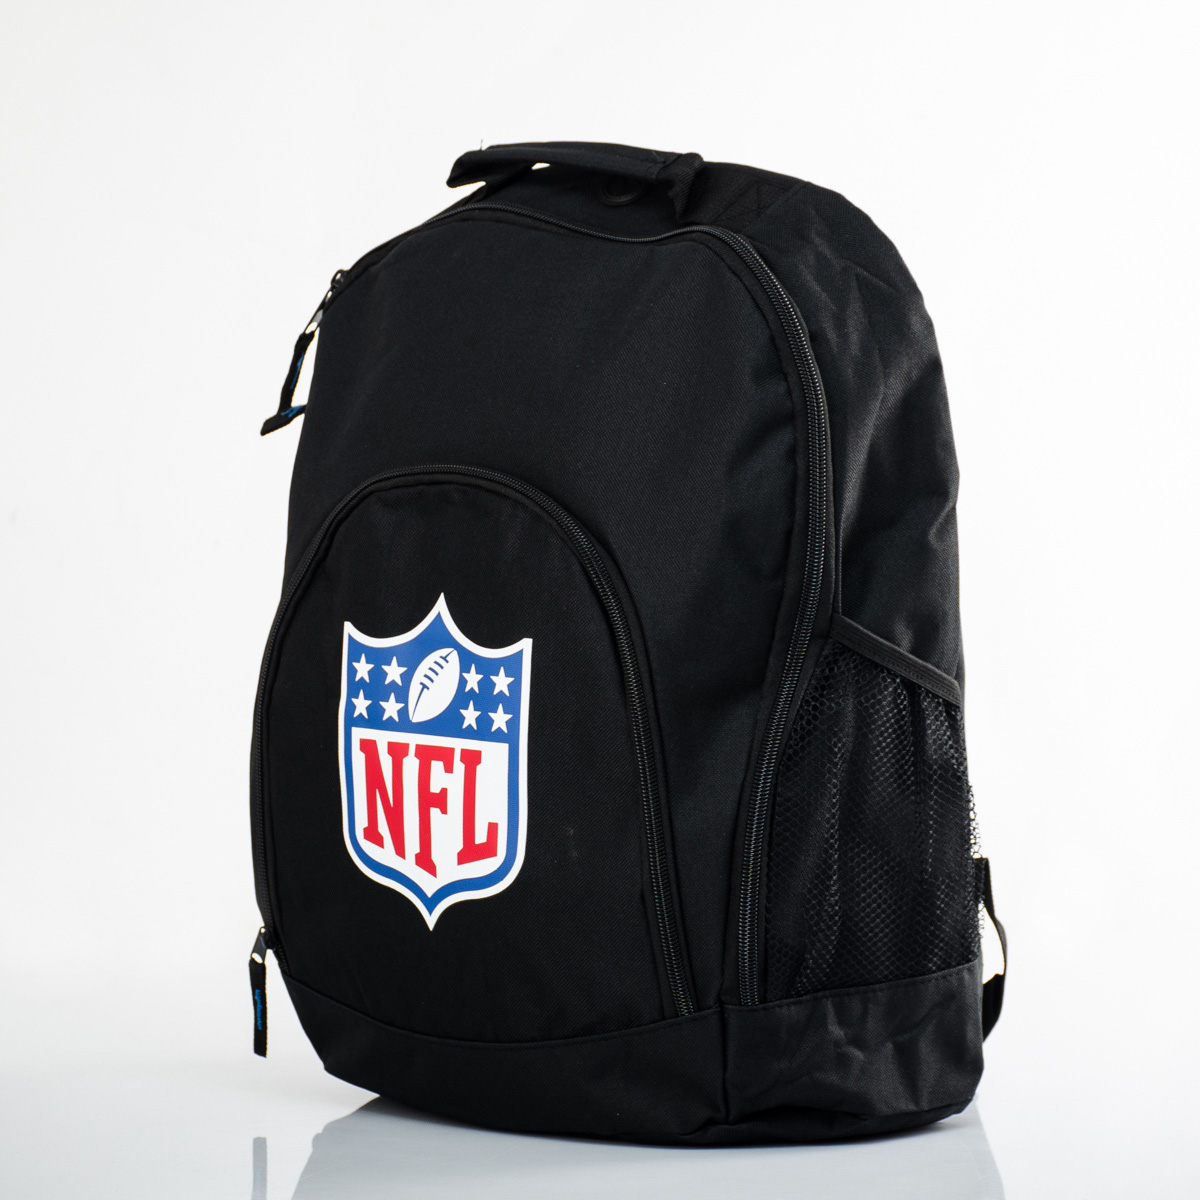 94267493c479 Forever Collectibles NFL Shield Backpack - MLB NFL NHL SHOP NFL American  Football Merchandise - Superfanas.lt